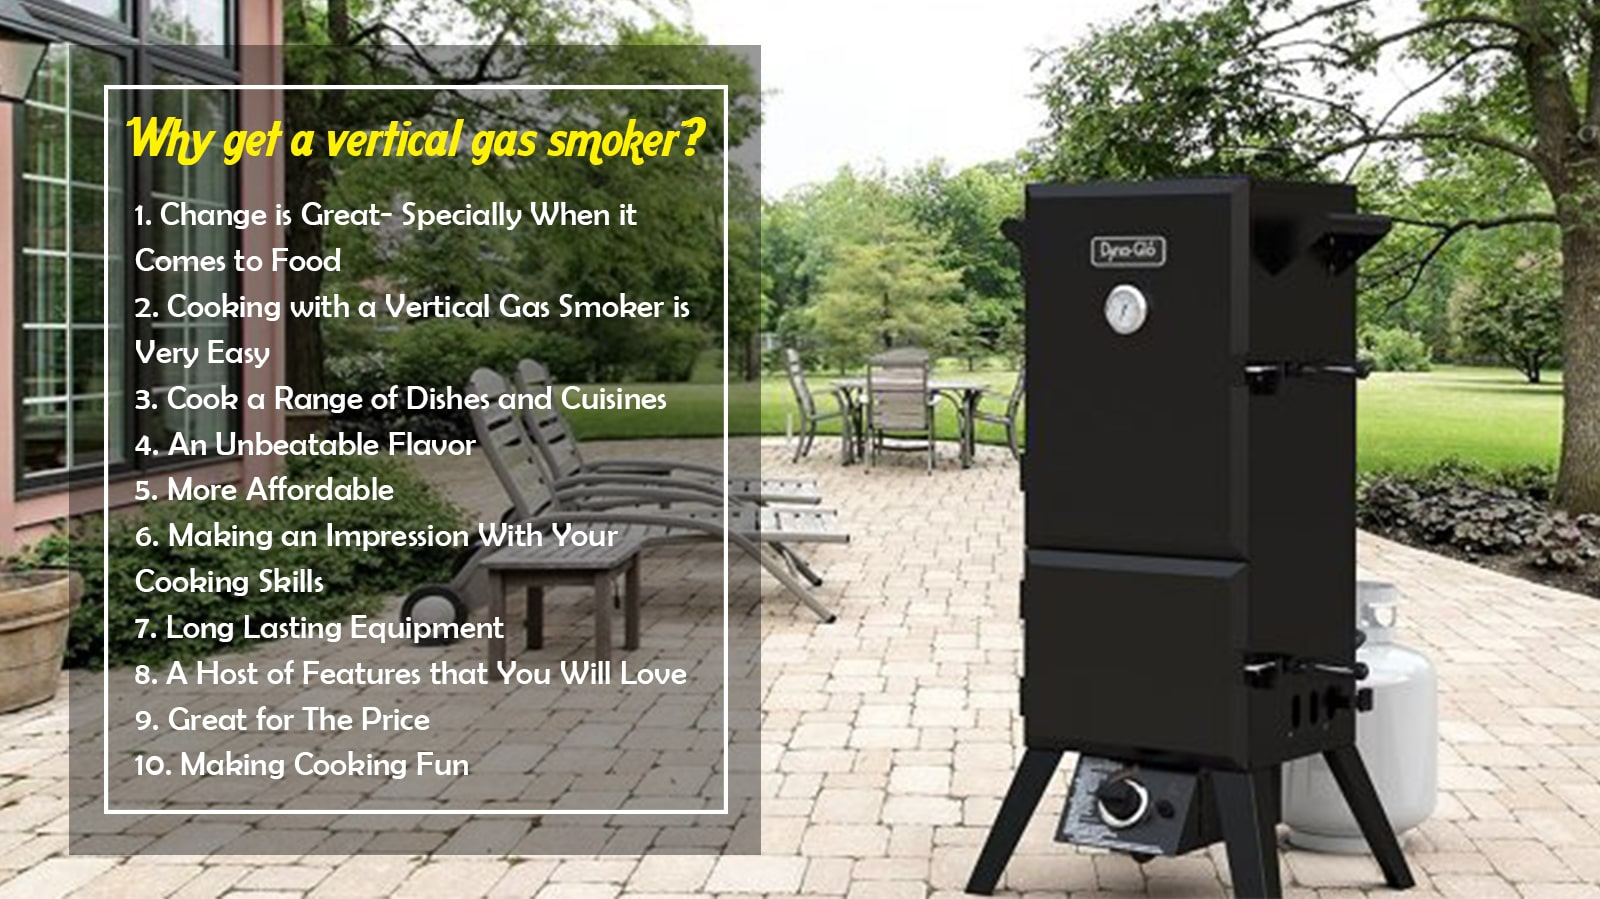 10 Hot Reasons to Get a Vertical Gas Smoker